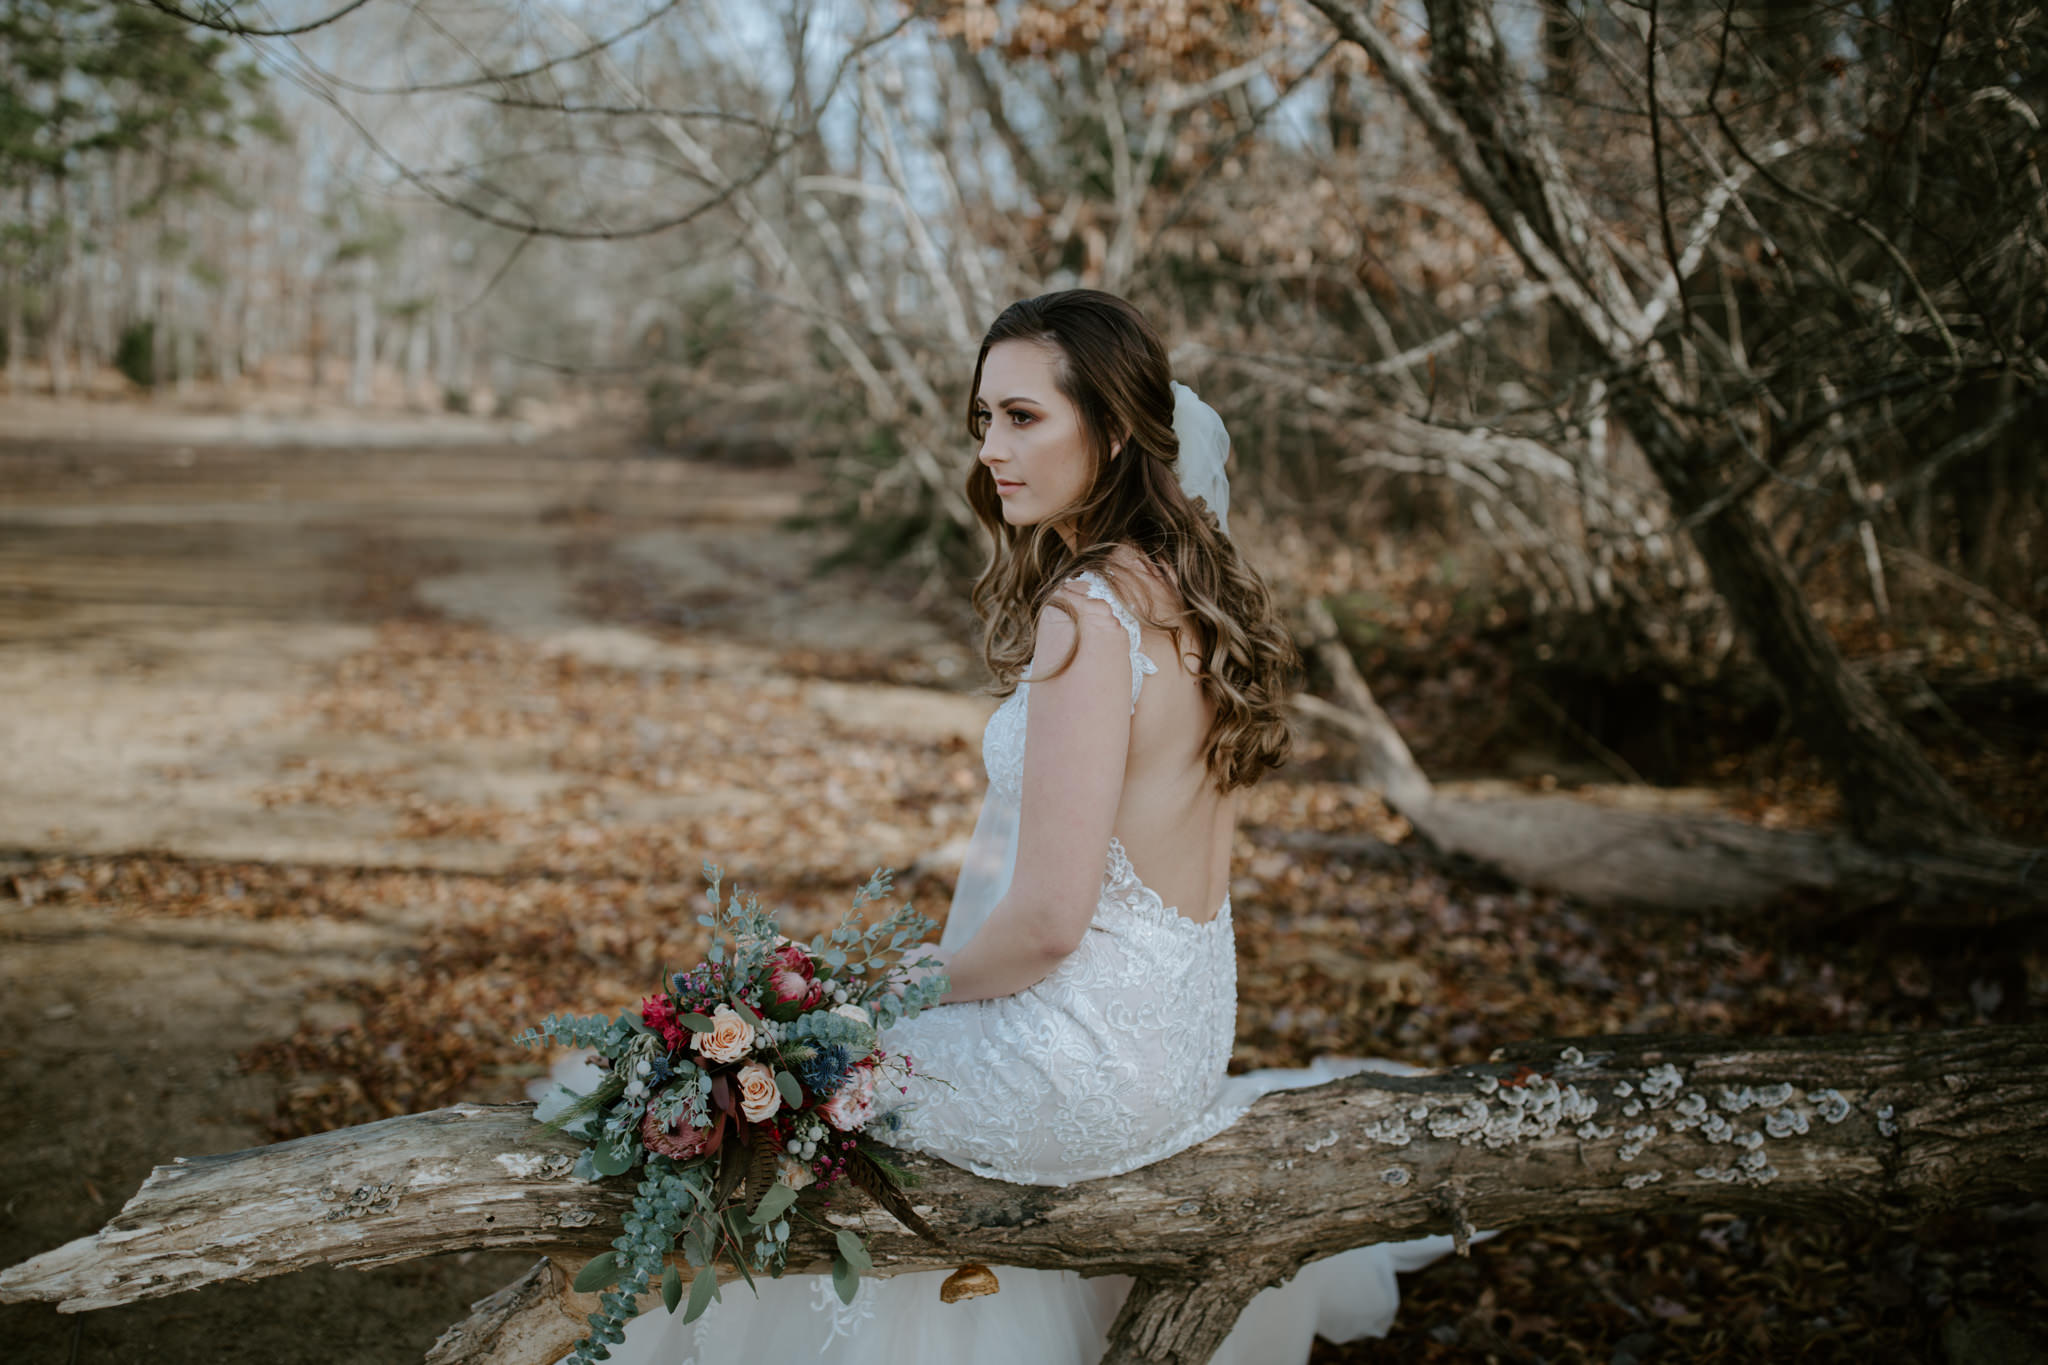 Katie-Bridal-Chattanooga-Nashville-Wedding-Elopement-Photographer-72.jpg